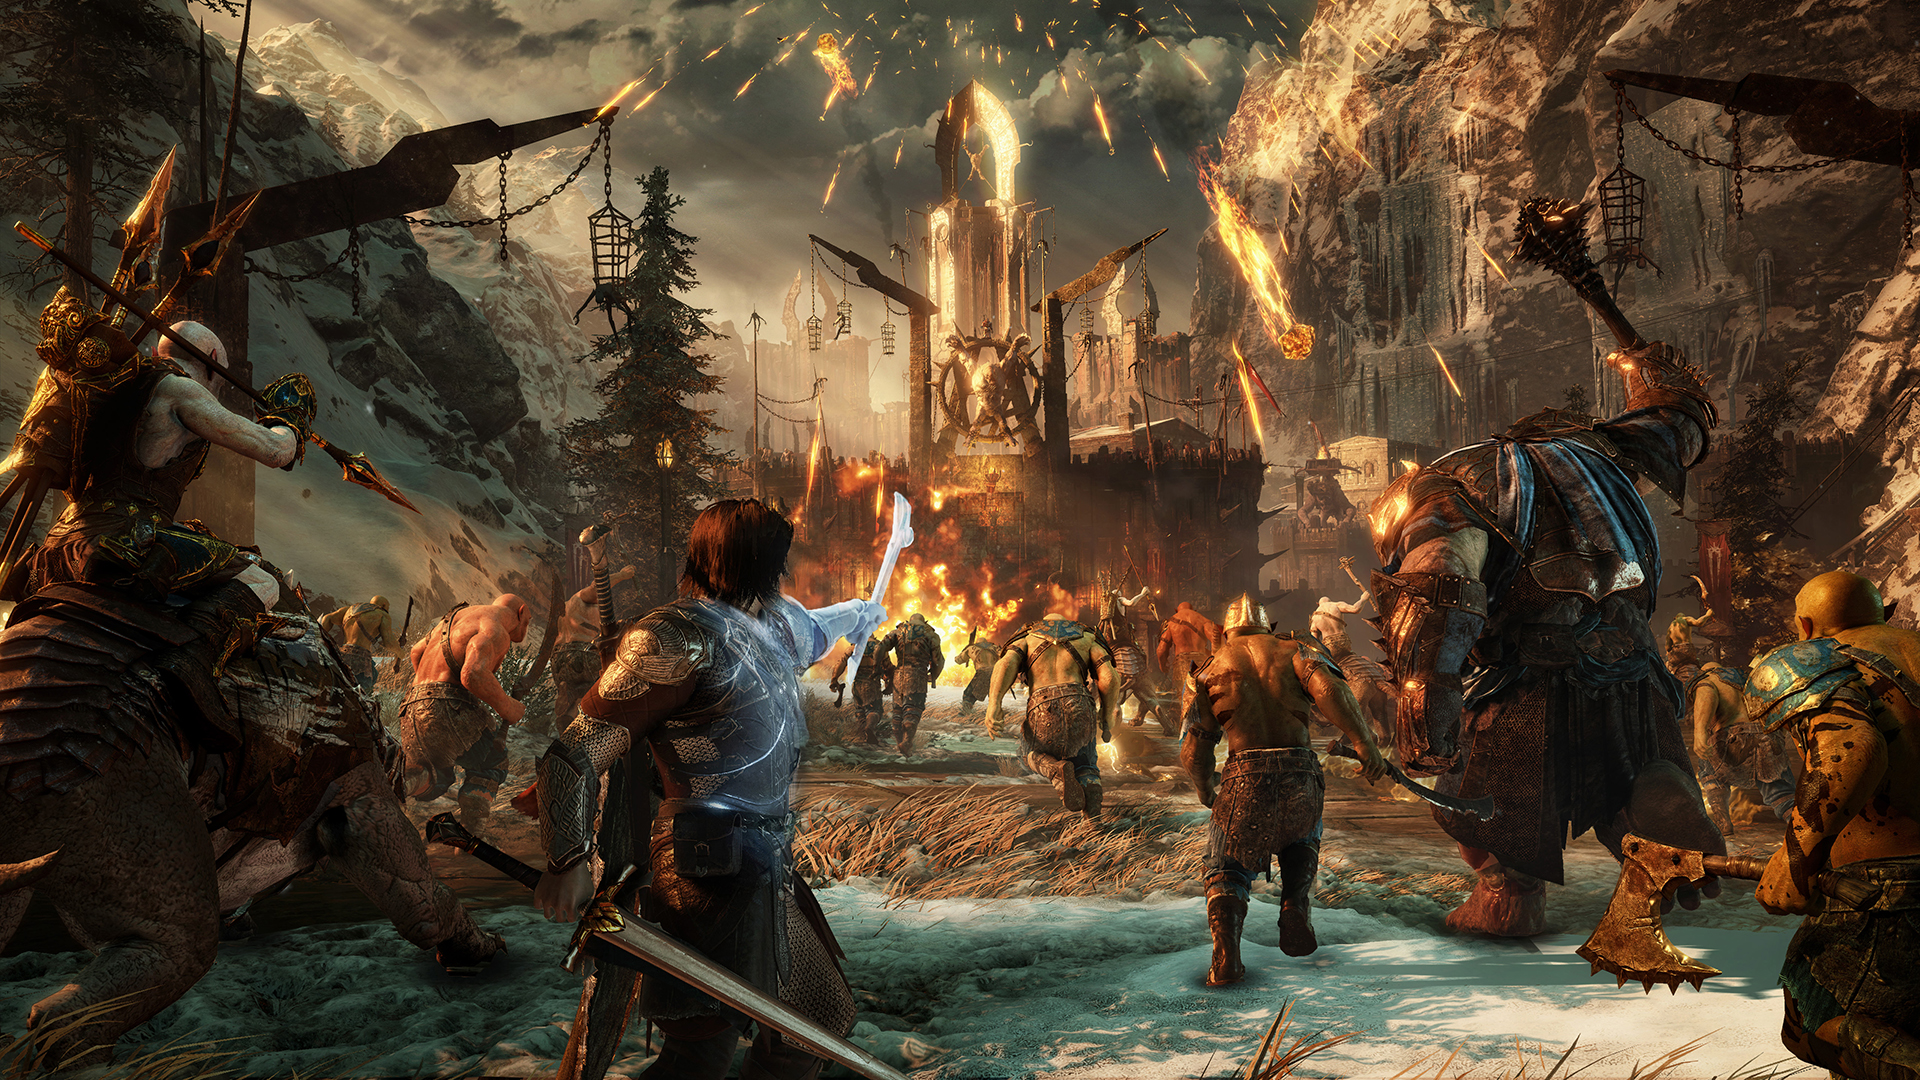 Middle-earth: Shadow of War's charity DLC will be free for everyone